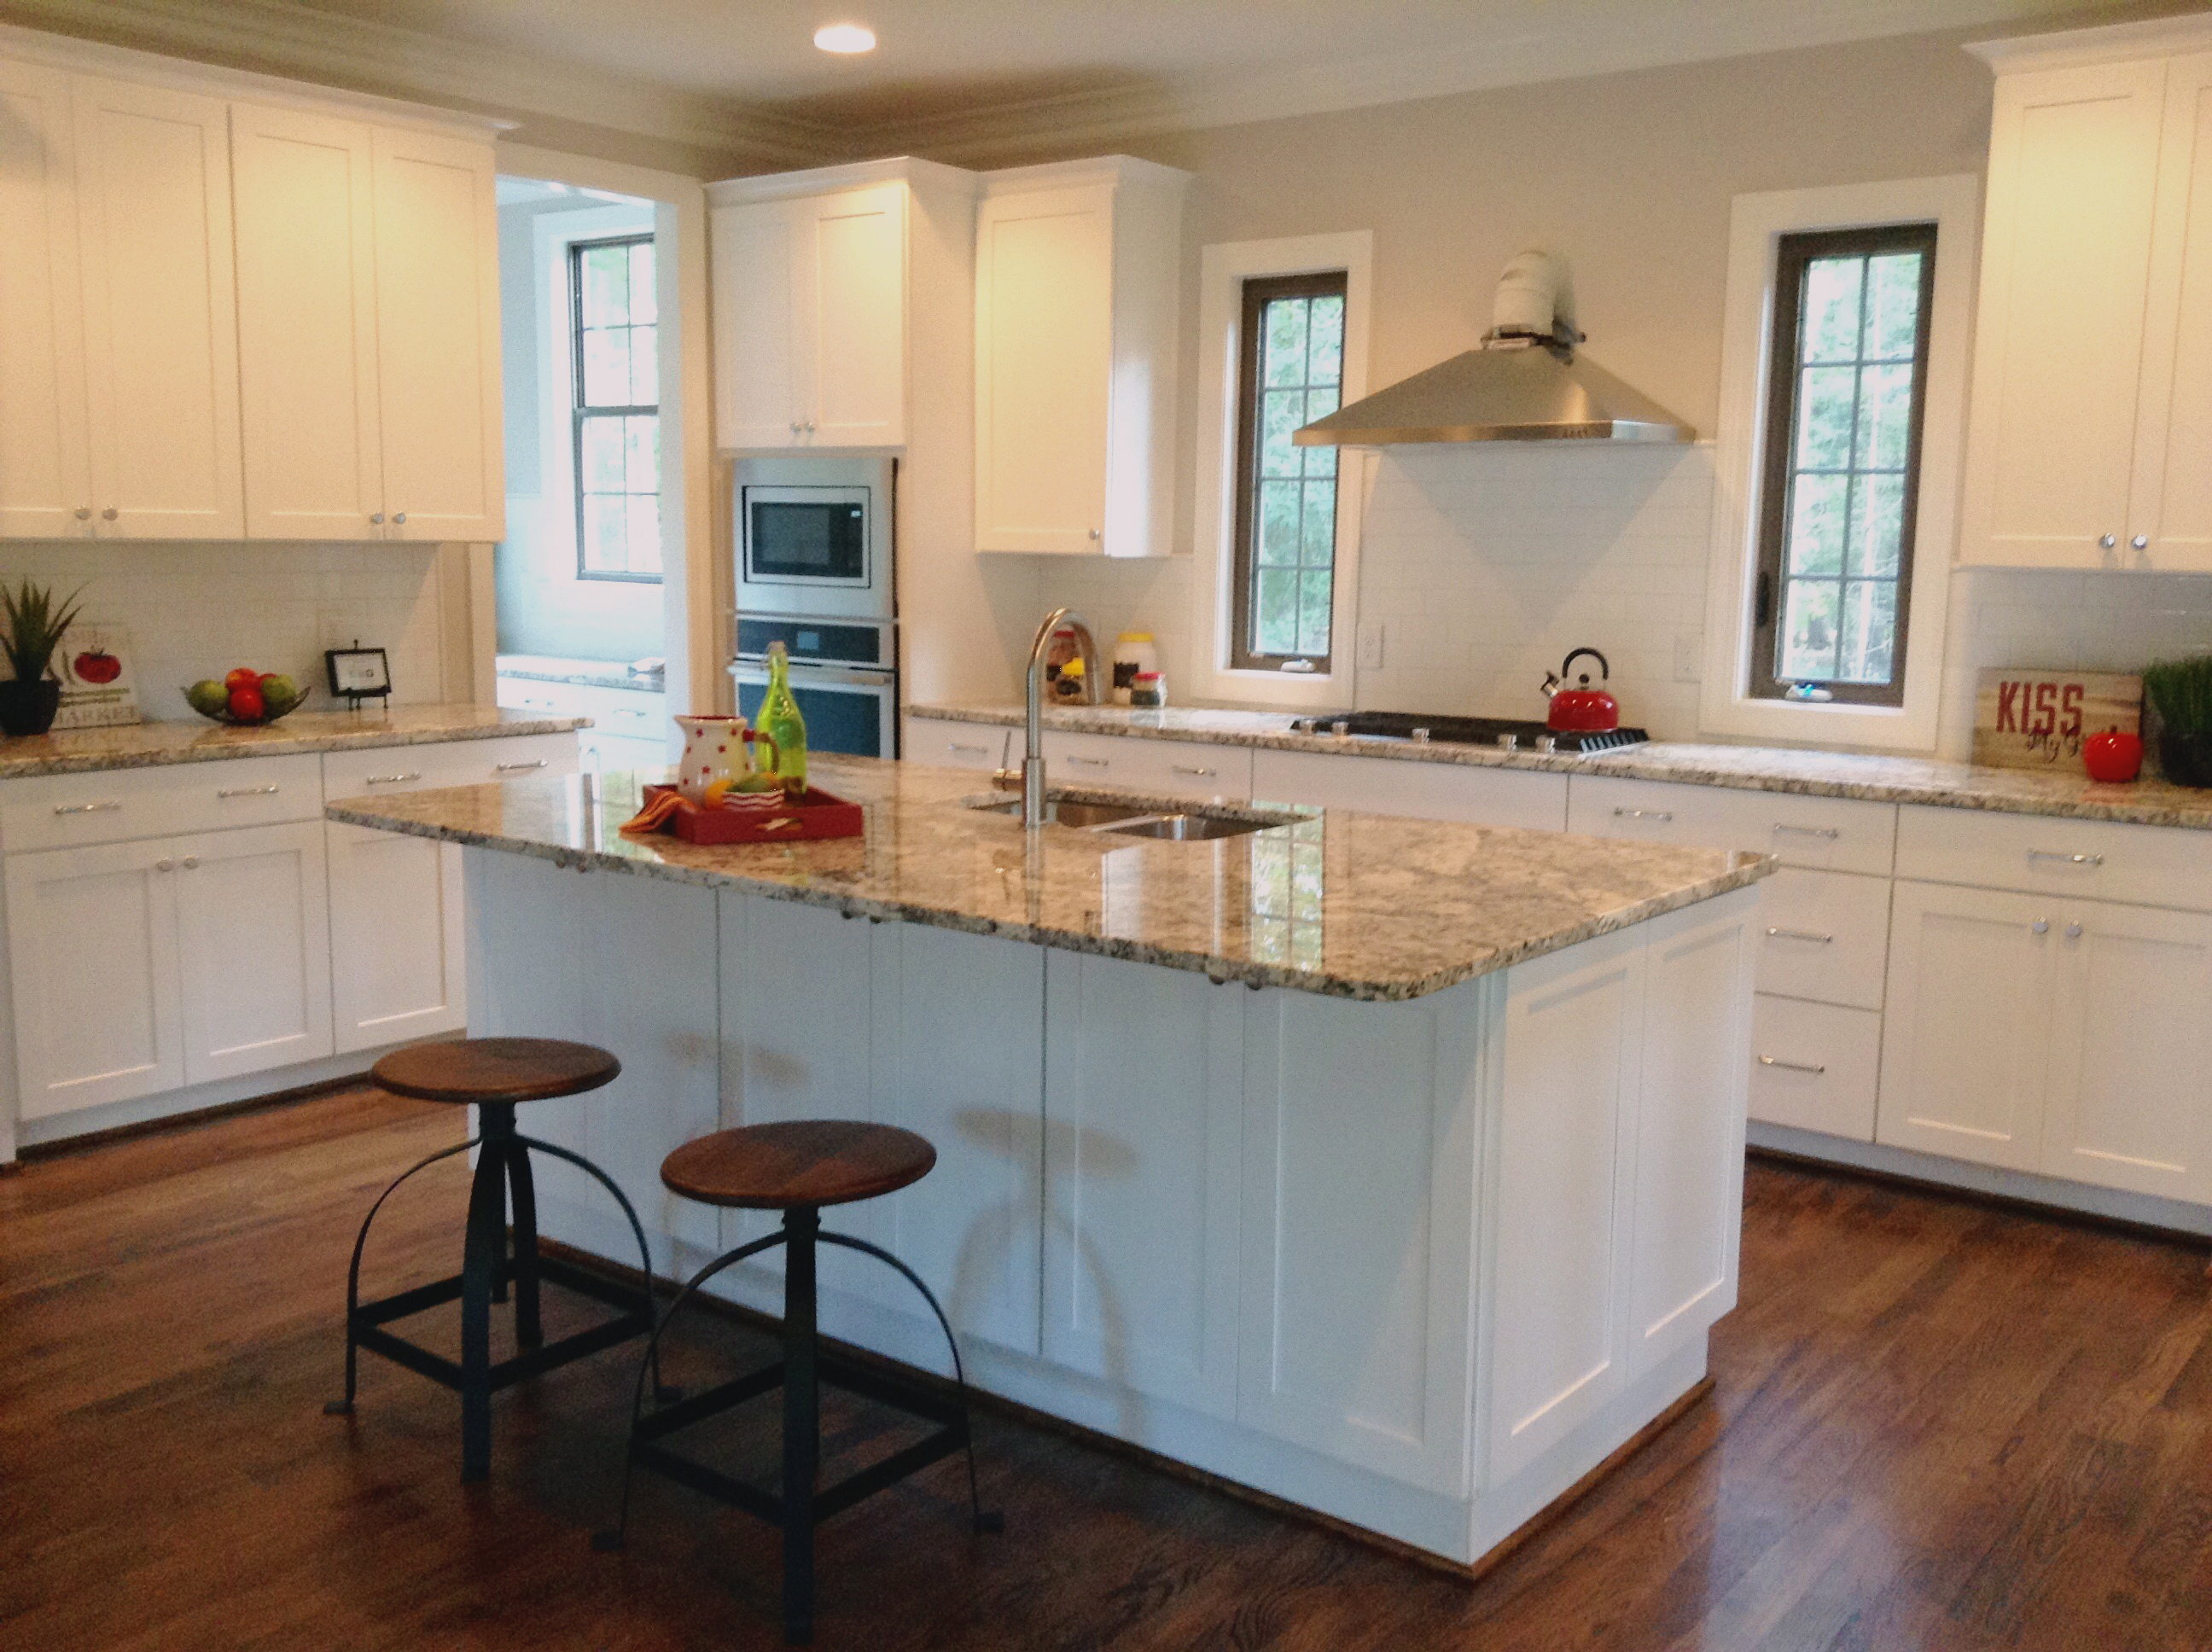 kitchen home interior design raleigh nc sweet t designer model home staging in chapel hill